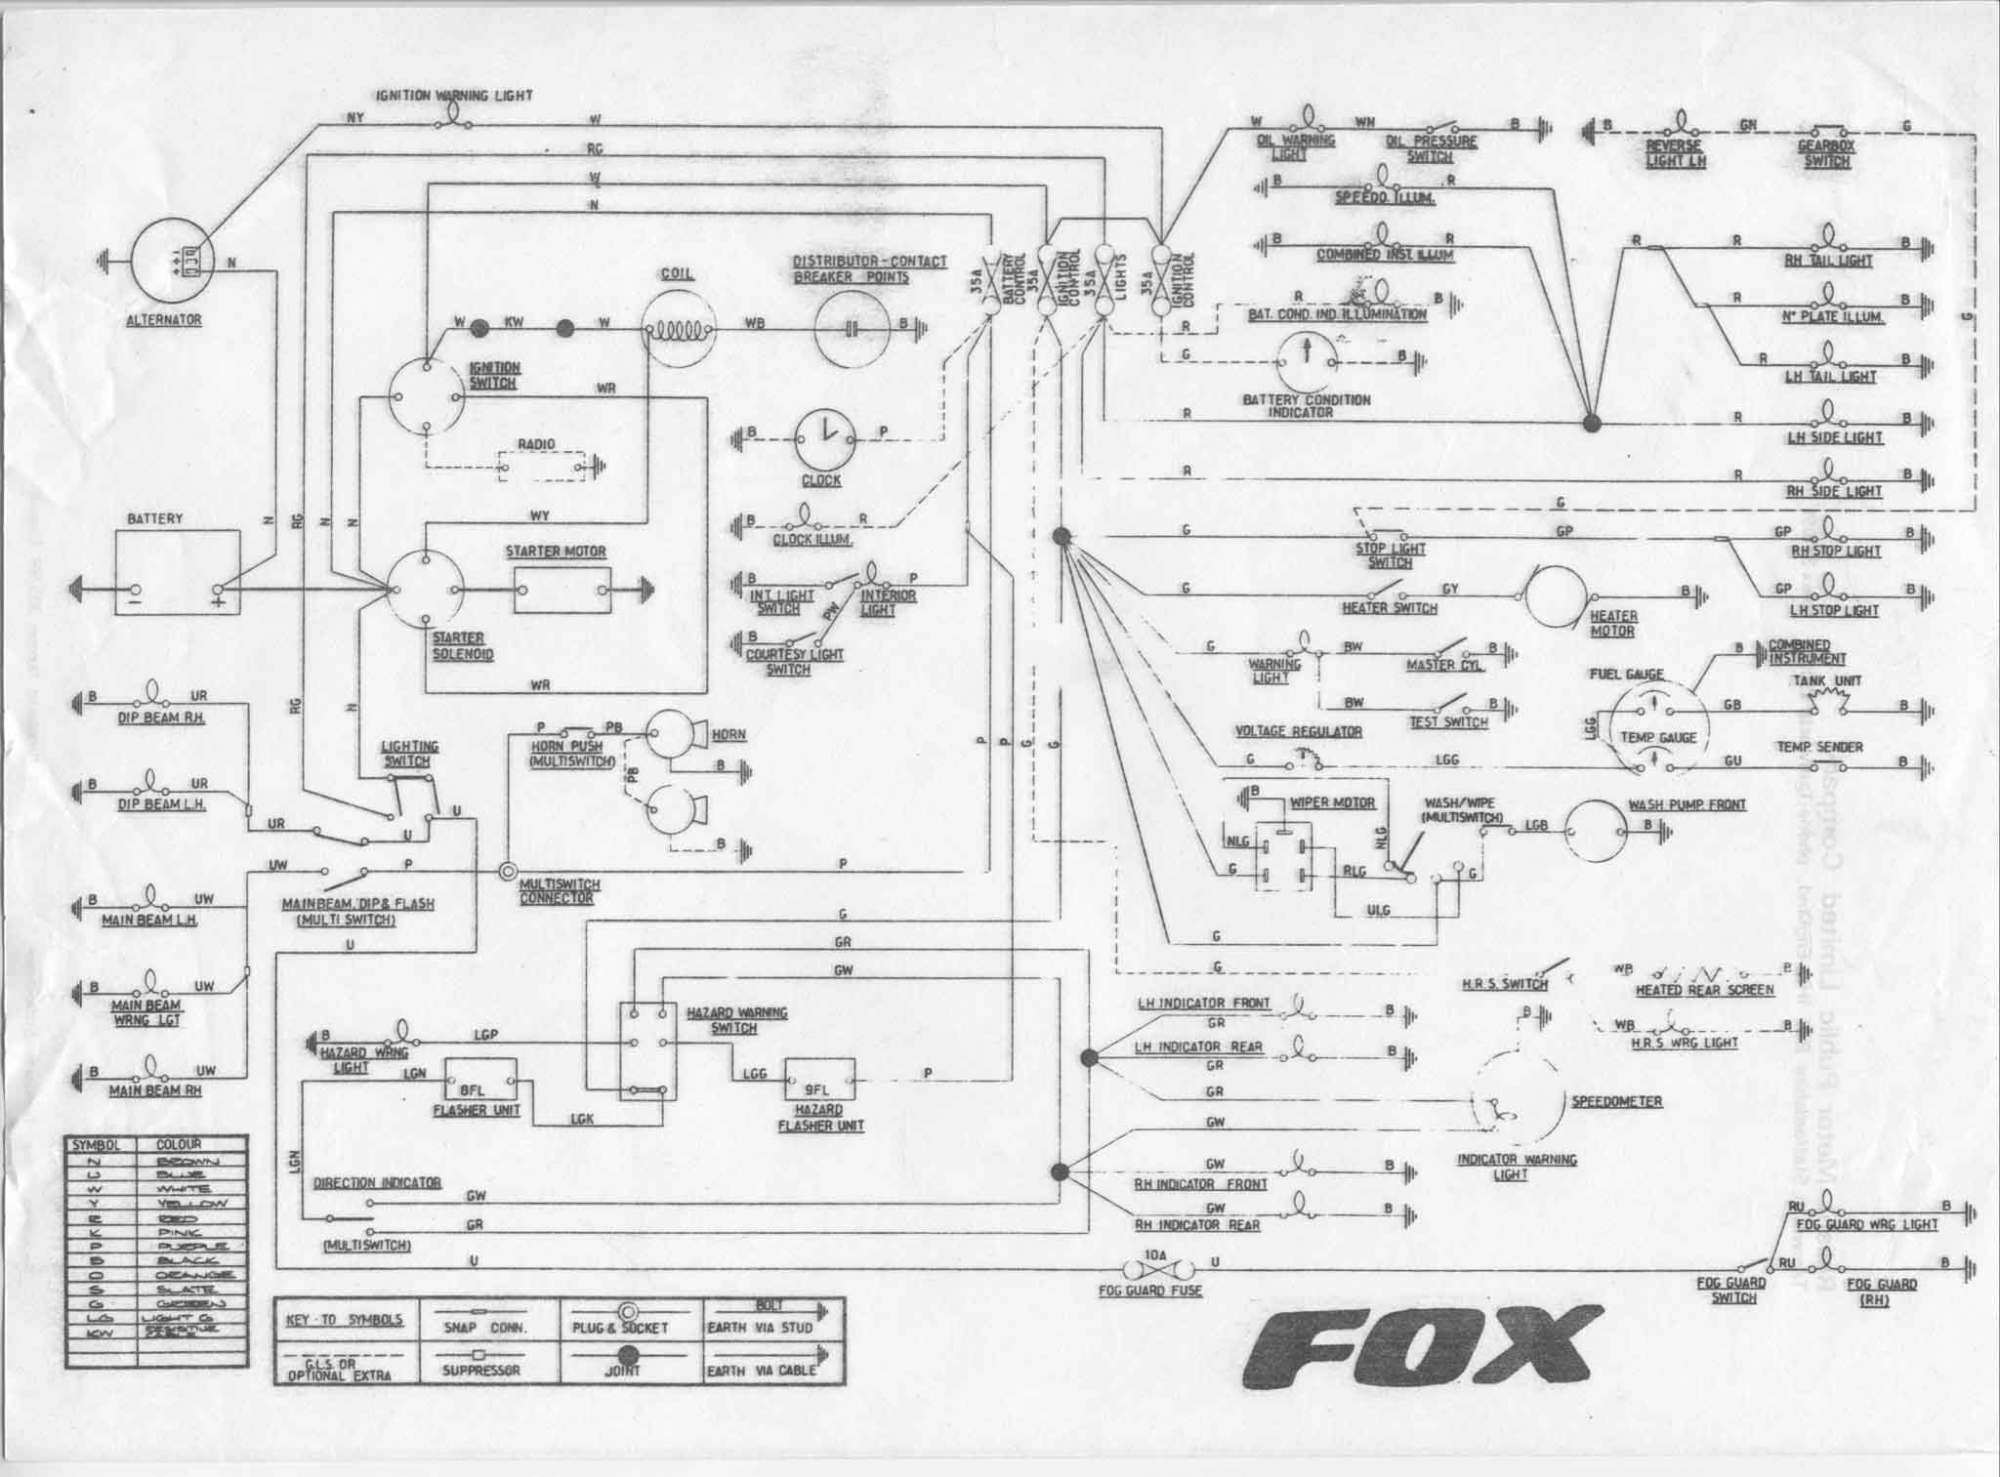 hight resolution of reliant fox wiring diagram covers most of tempest asquith vantique mk2 and mk3 robin